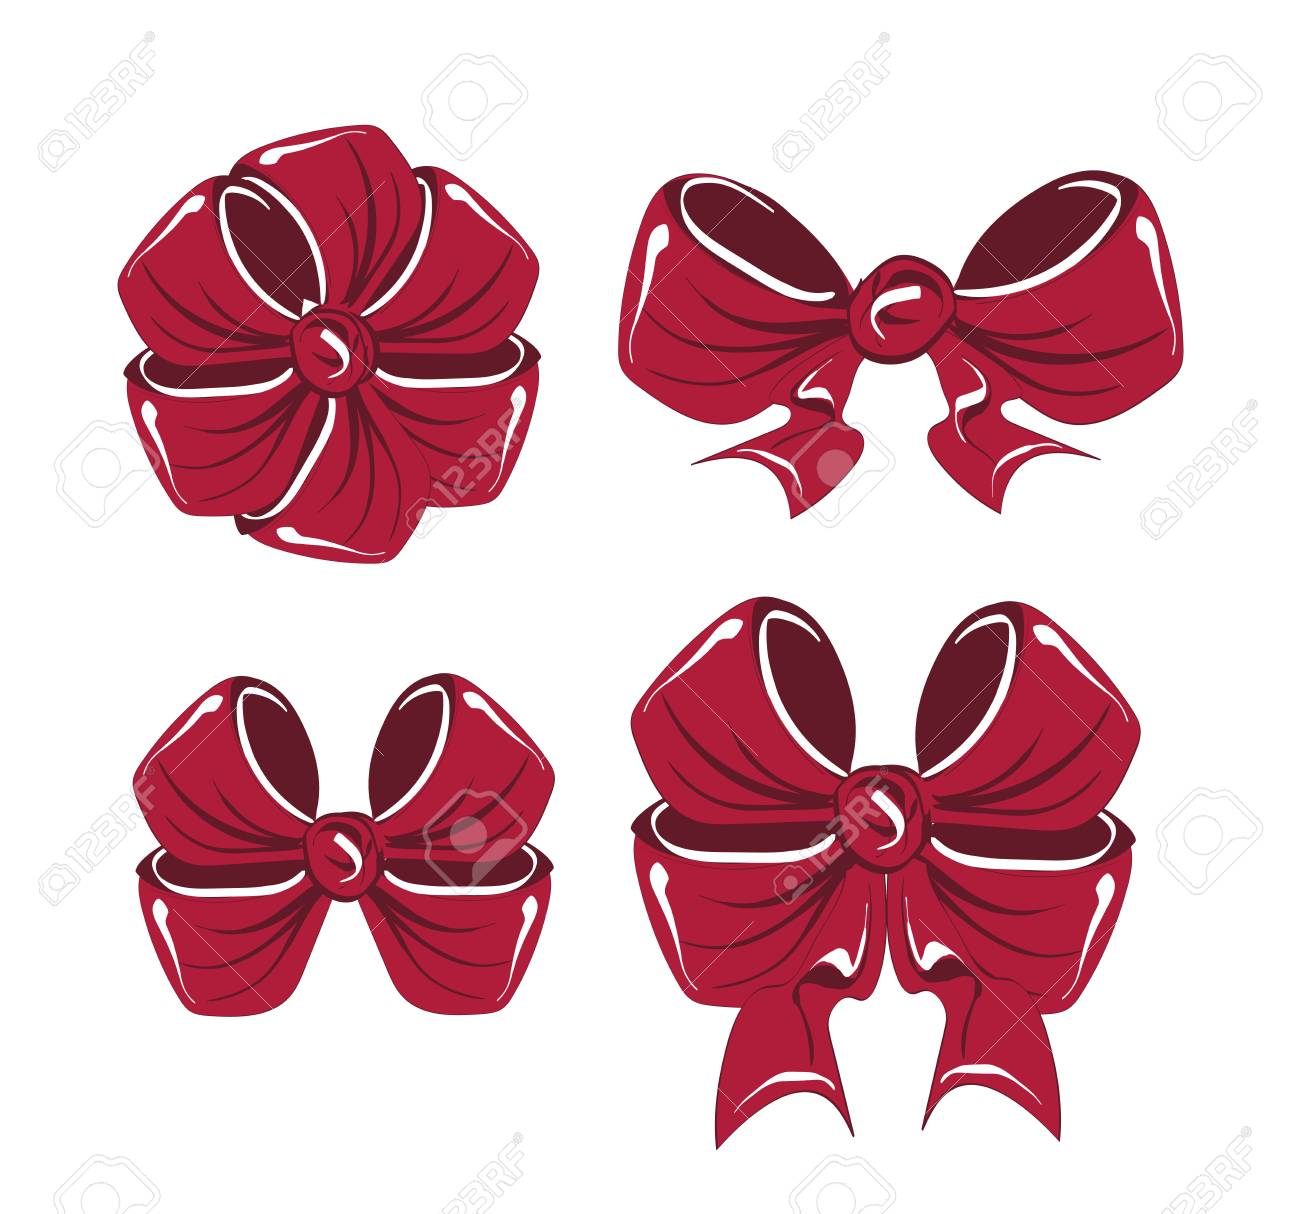 Colorful Christmas gift bows set with ribbons. Vector Stock Vector - 89112038  sc 1 st  123RF.com & Colorful Christmas Gift Bows Set With Ribbons. Vector Royalty Free ...